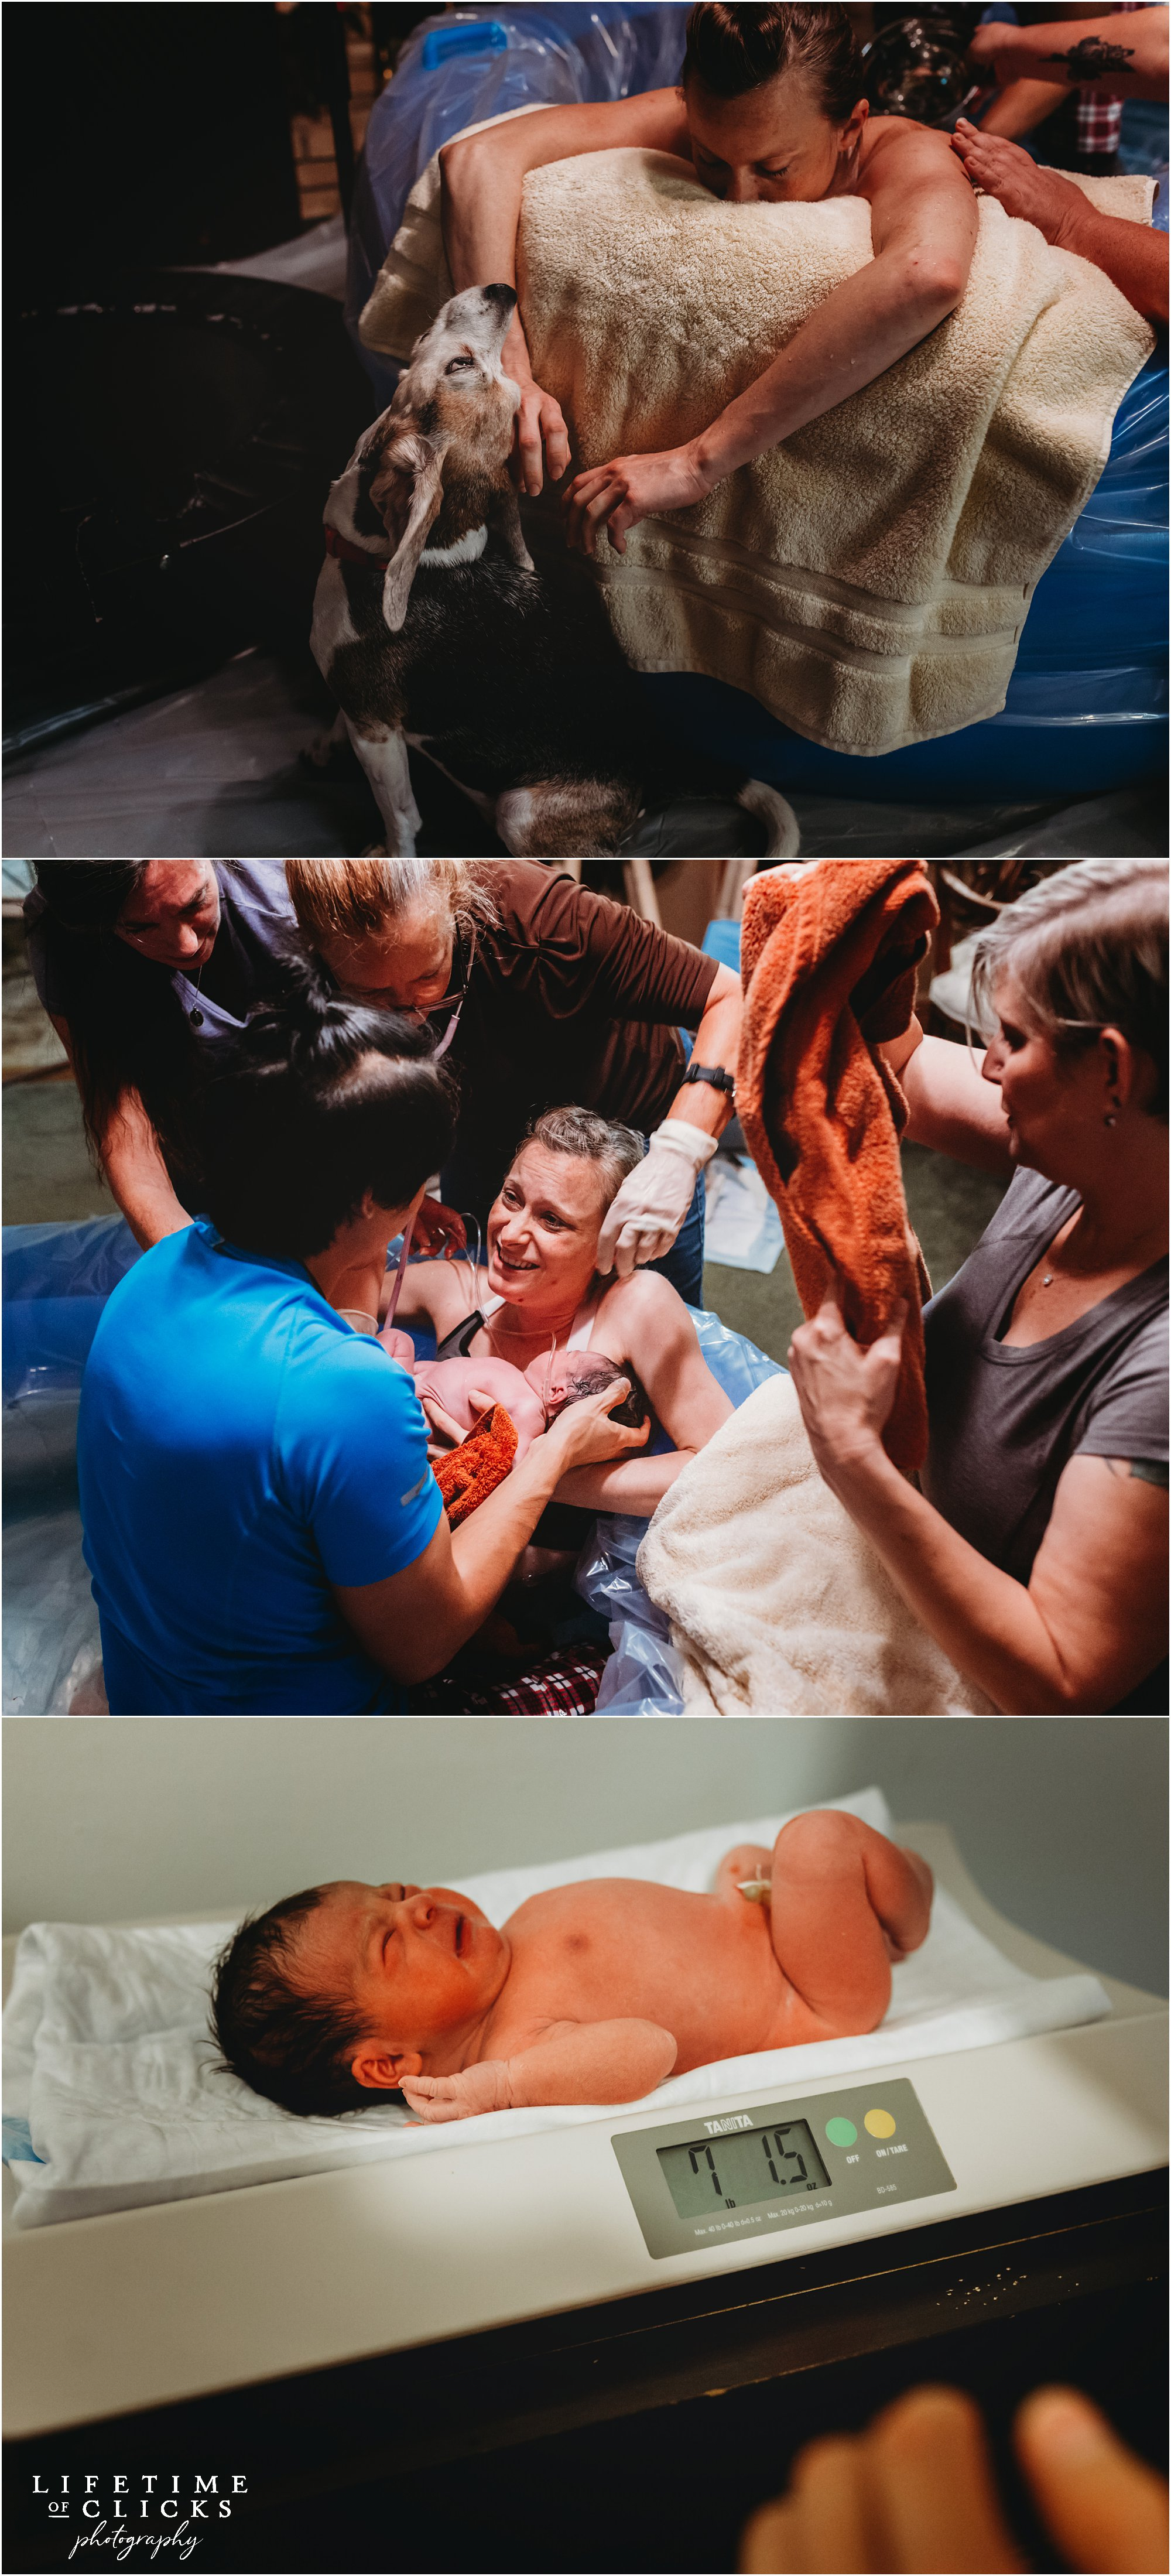 Click to view an amazing Home Birth by The Labor Enabler documented by Lifetime of Clicks Photography | #houstondoula #houstonbirthphotographer #katybirthphotographer #katytx